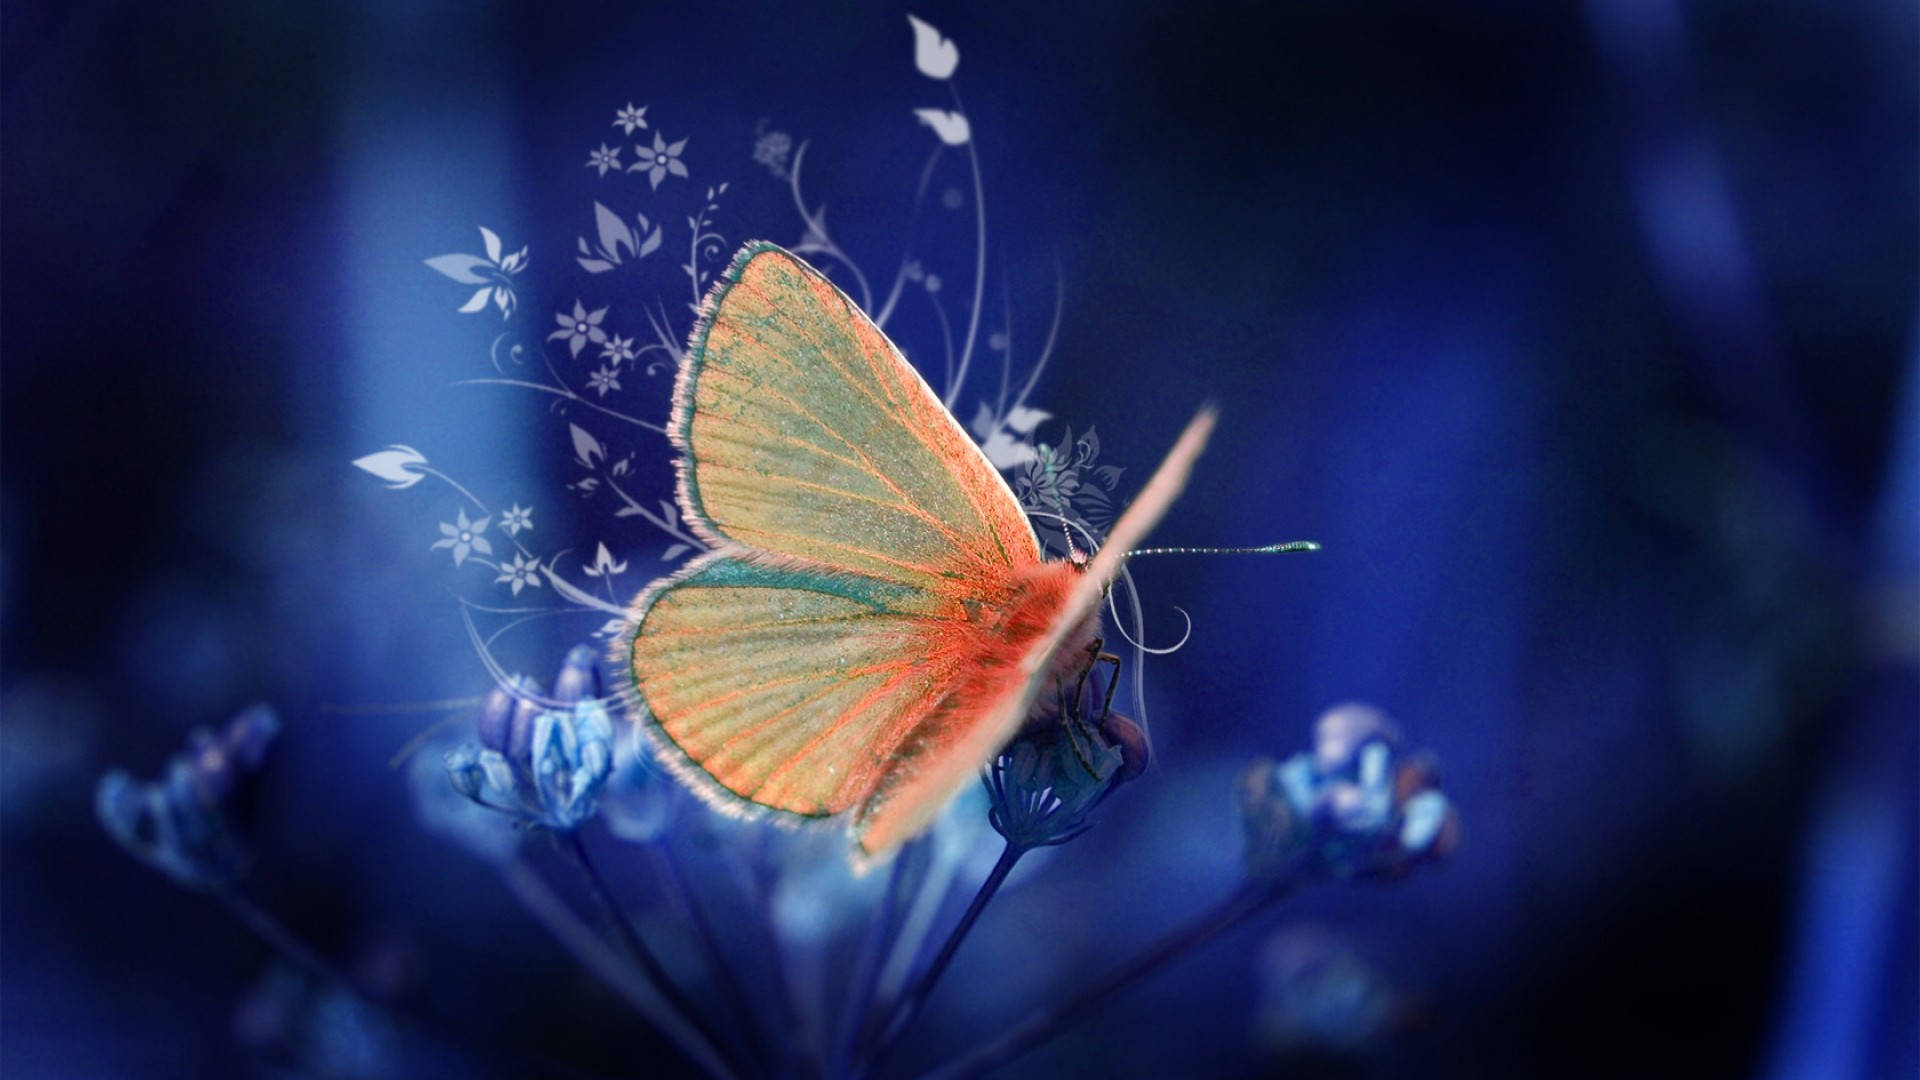 High definition Blue Butterfly wallpapers Butterfly Wallpapers 1920x1080